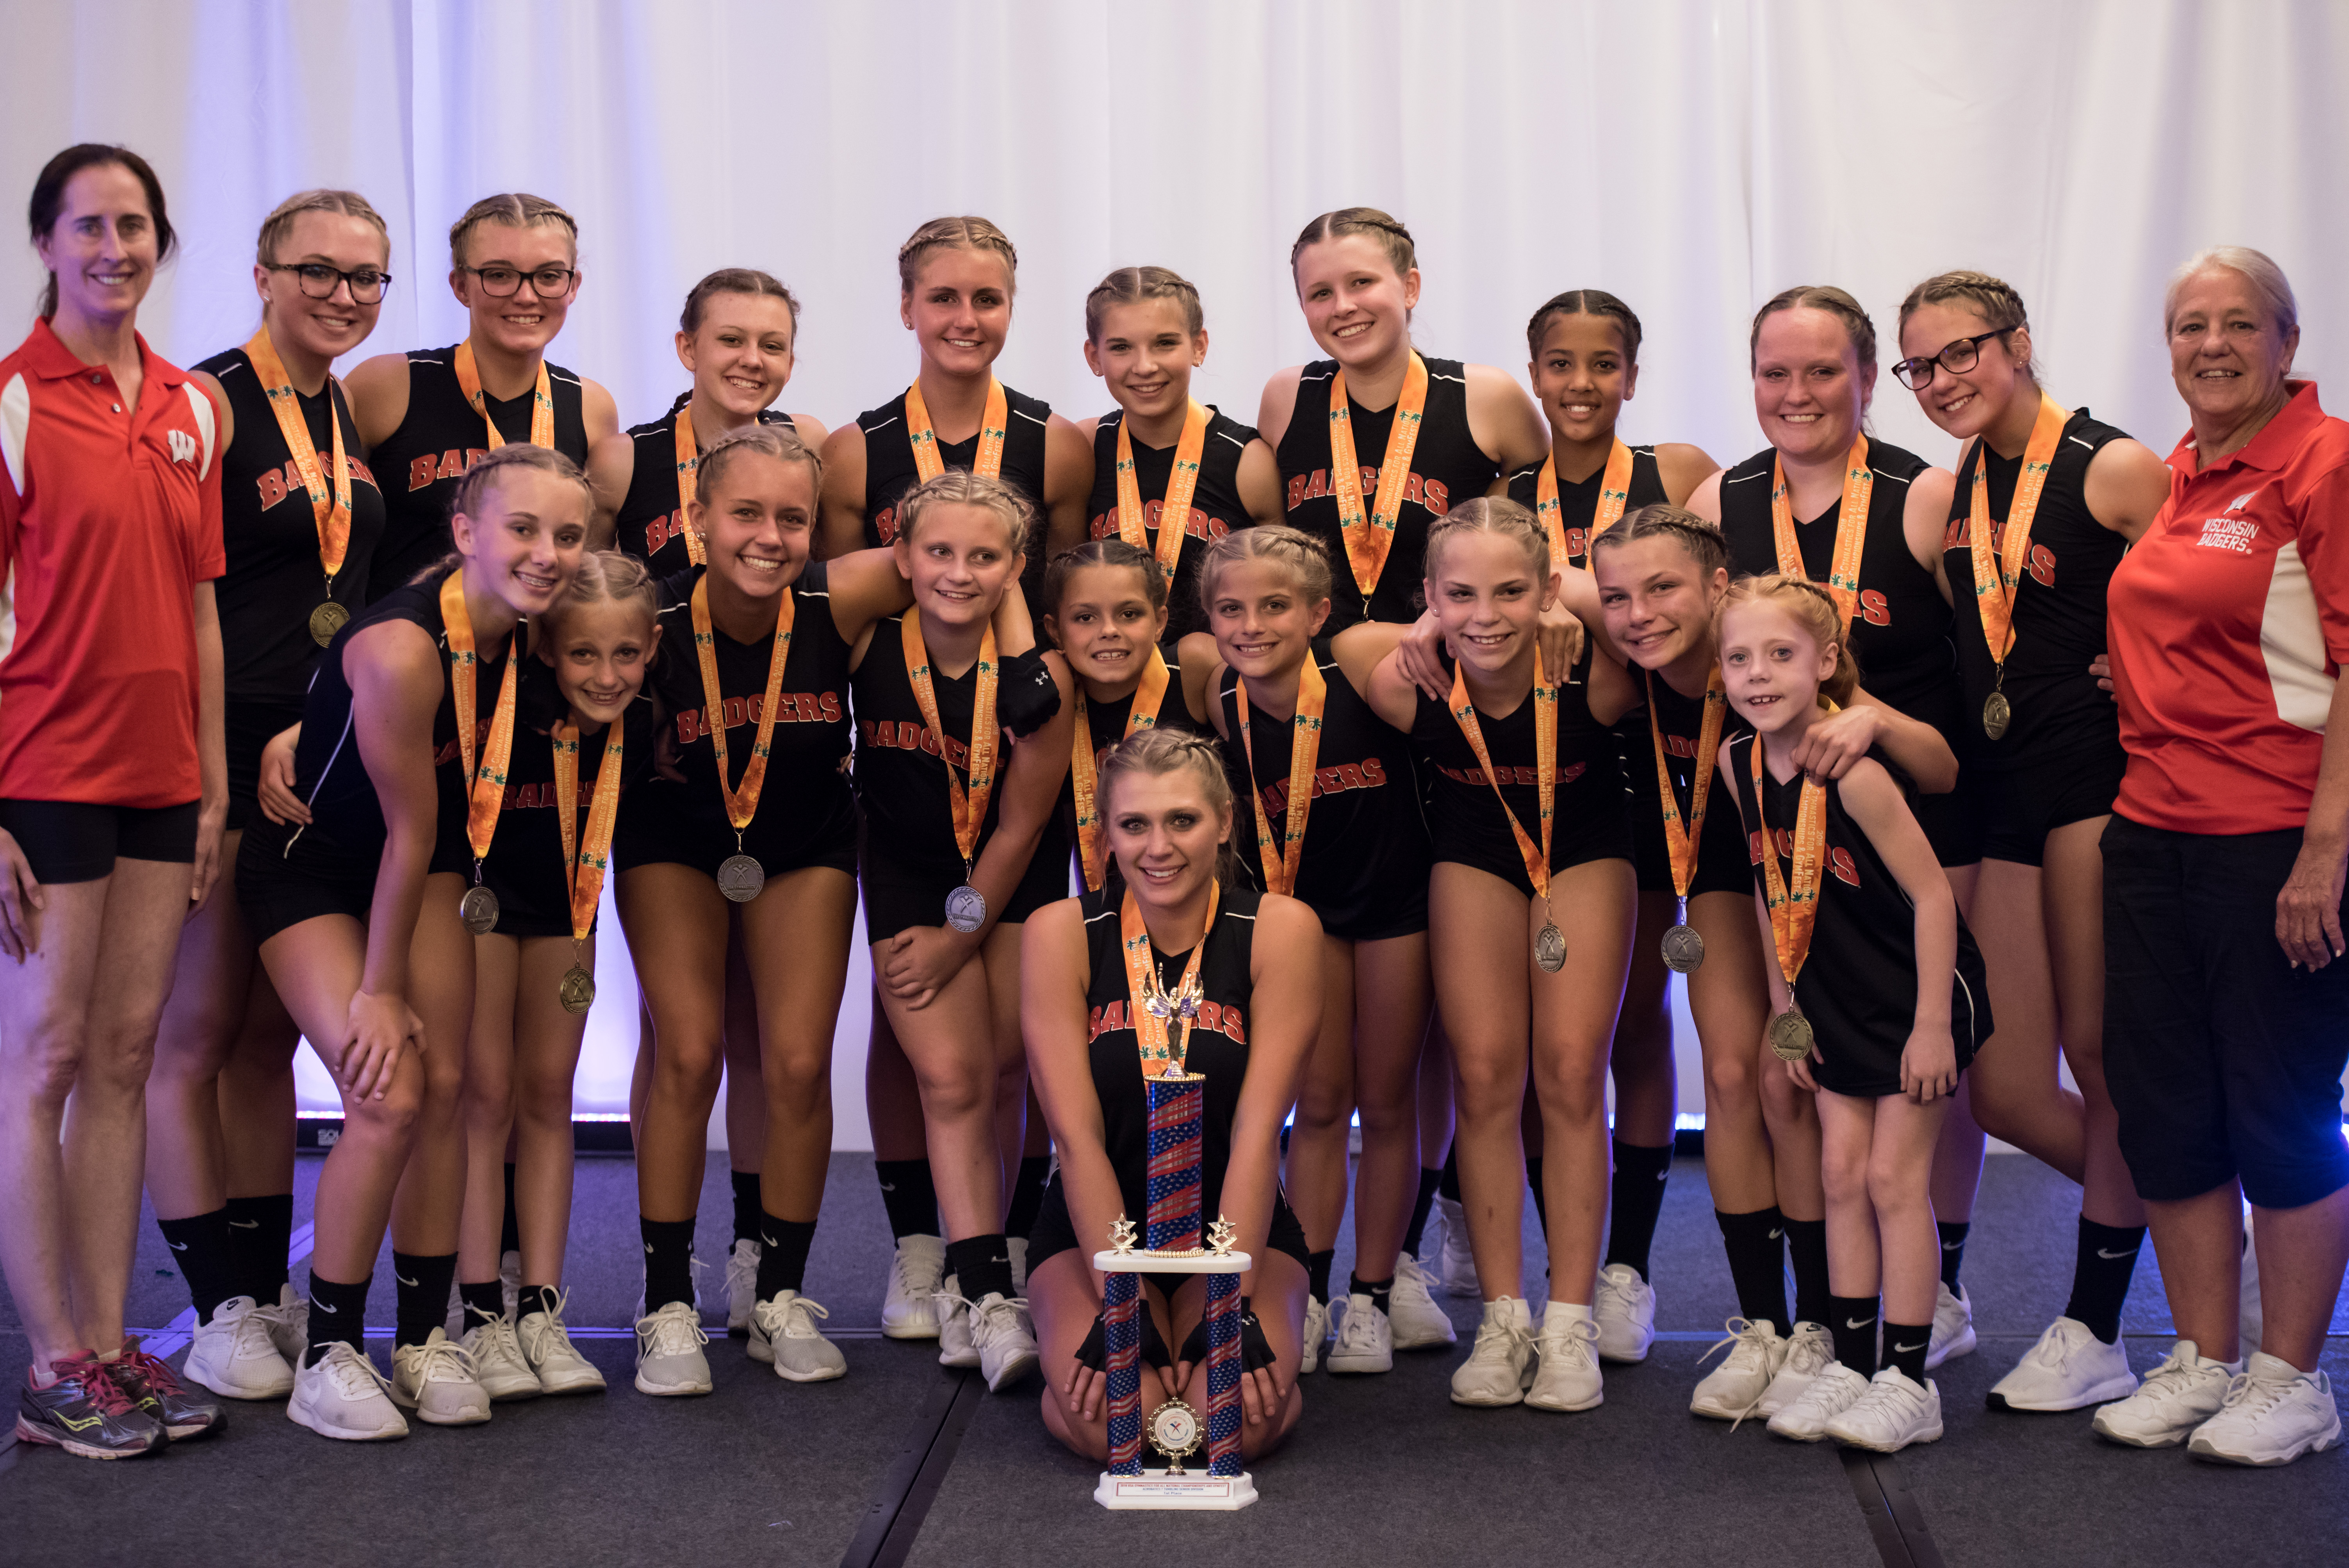 West Bend Dance Tumbling Troupe USA Gymnastics Acro and Tumbling National Champions